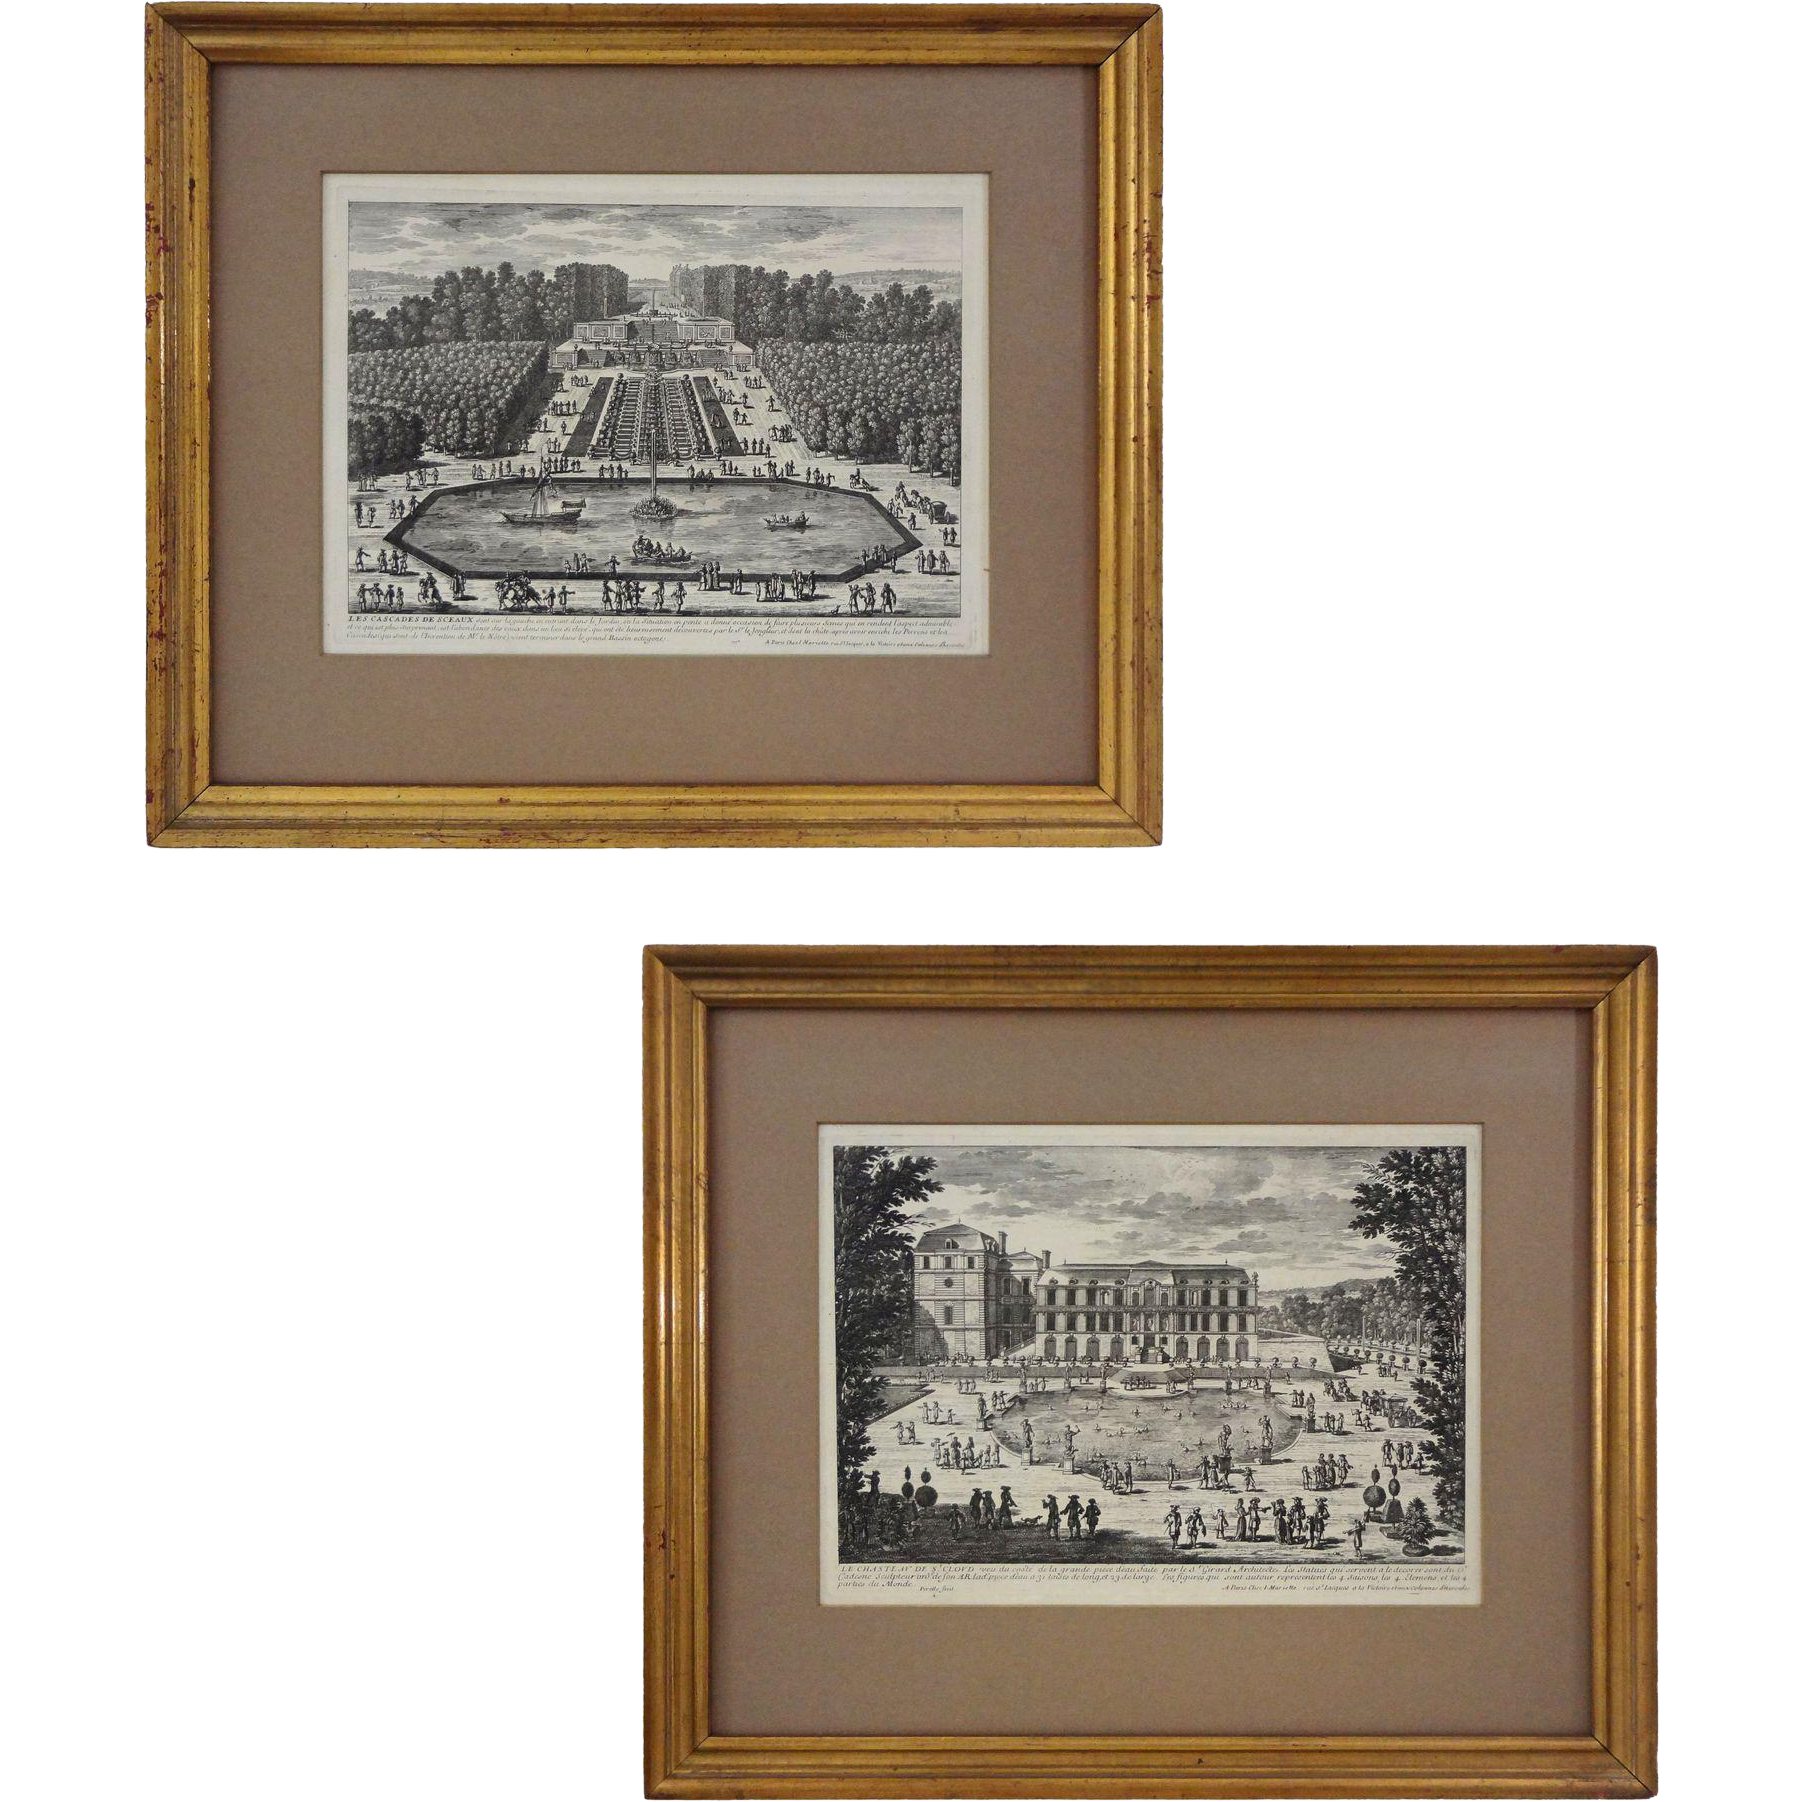 Pair Antique French Architectural / Topographic Engravings Les Cascades de Sceaux and Le château de St Cloud, Mariette after Perelle - c. 1710 and later, France